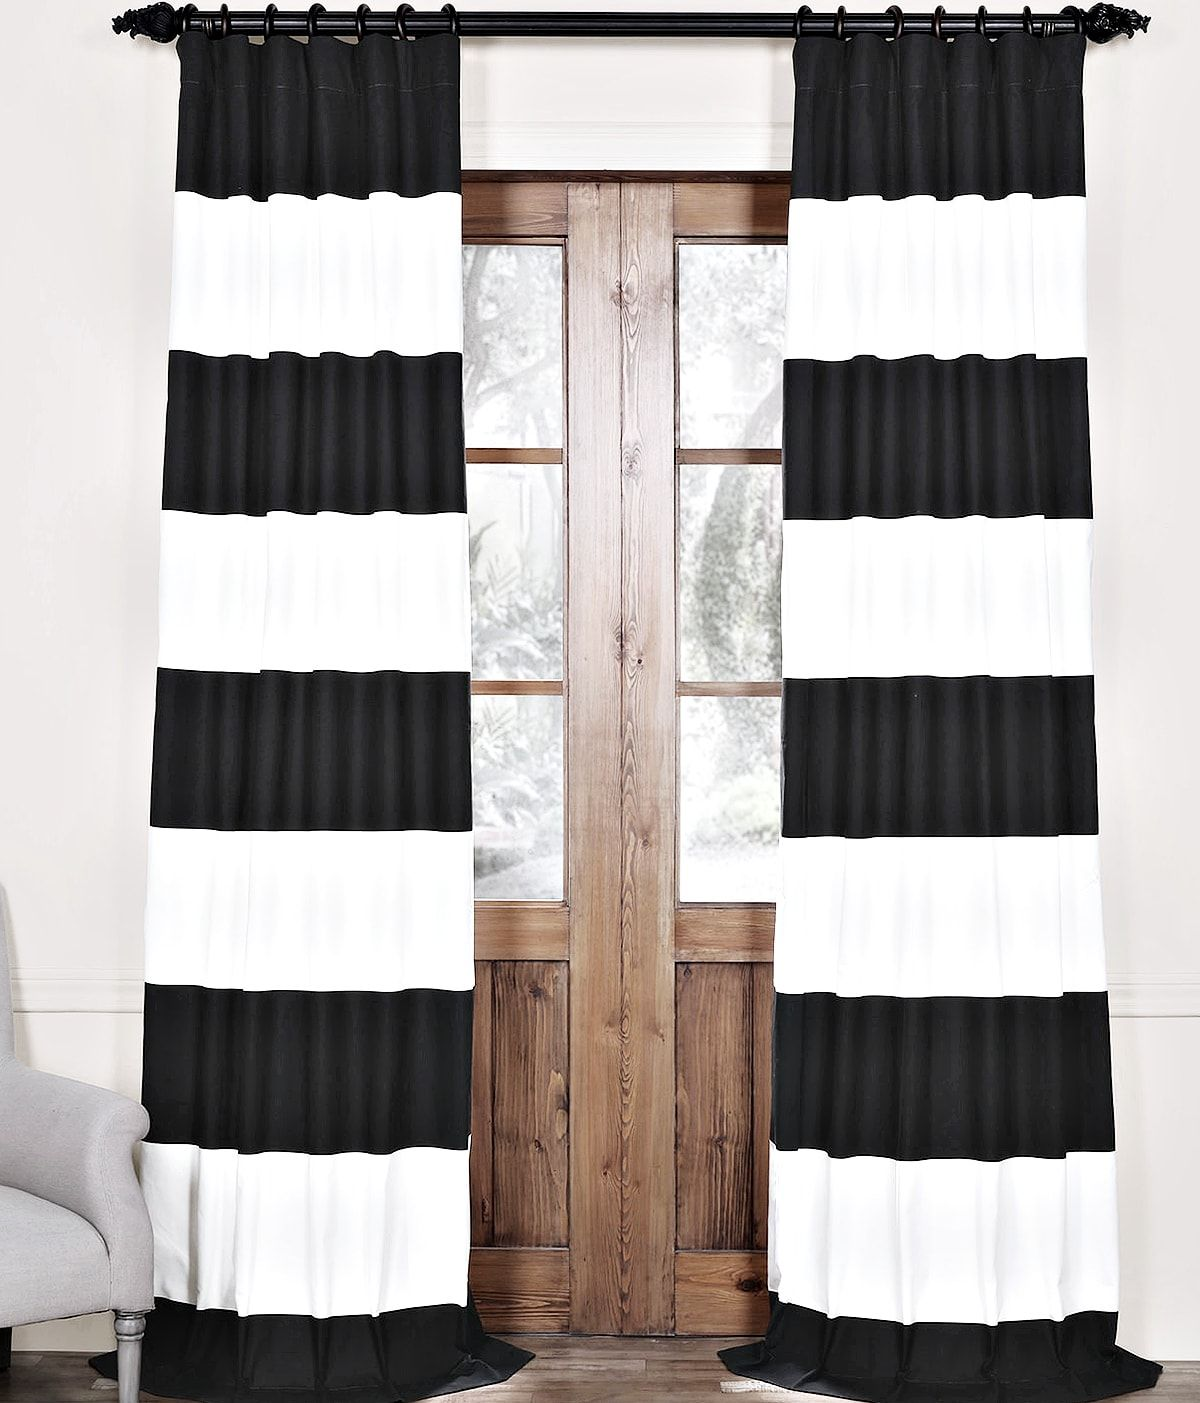 My Favorite Black And White Curtains Cuckoo4design Black White Curtains Horizontal Striped Curtains Curtains Living Room